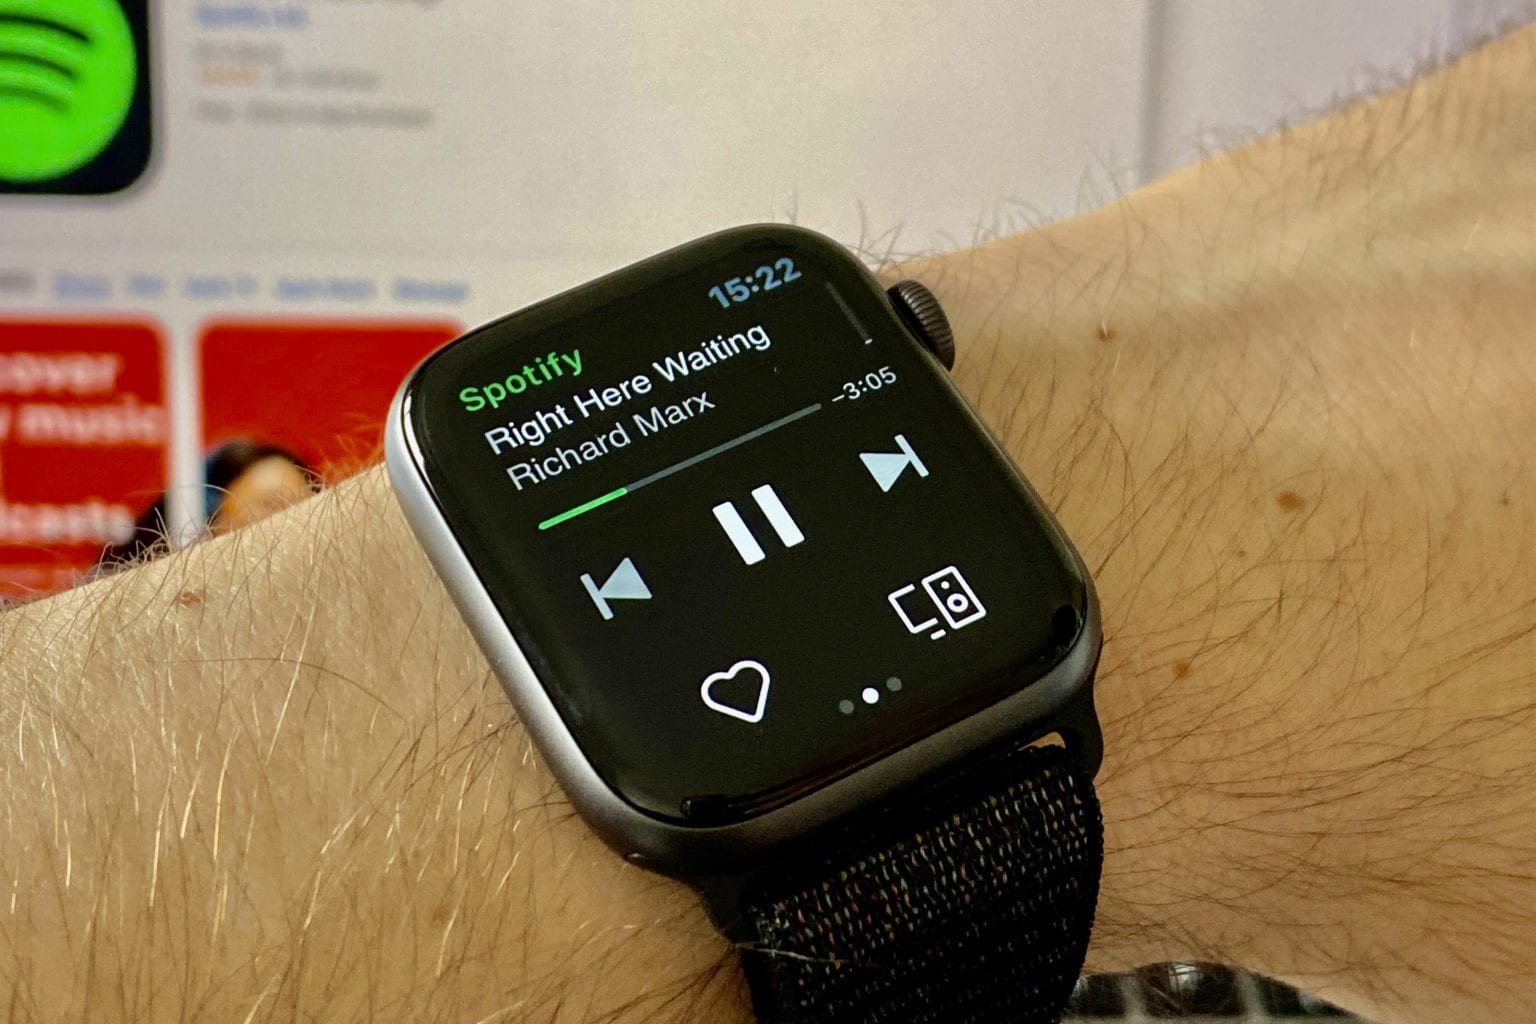 Spotify for Apple Watch – Stream music without an iPhone